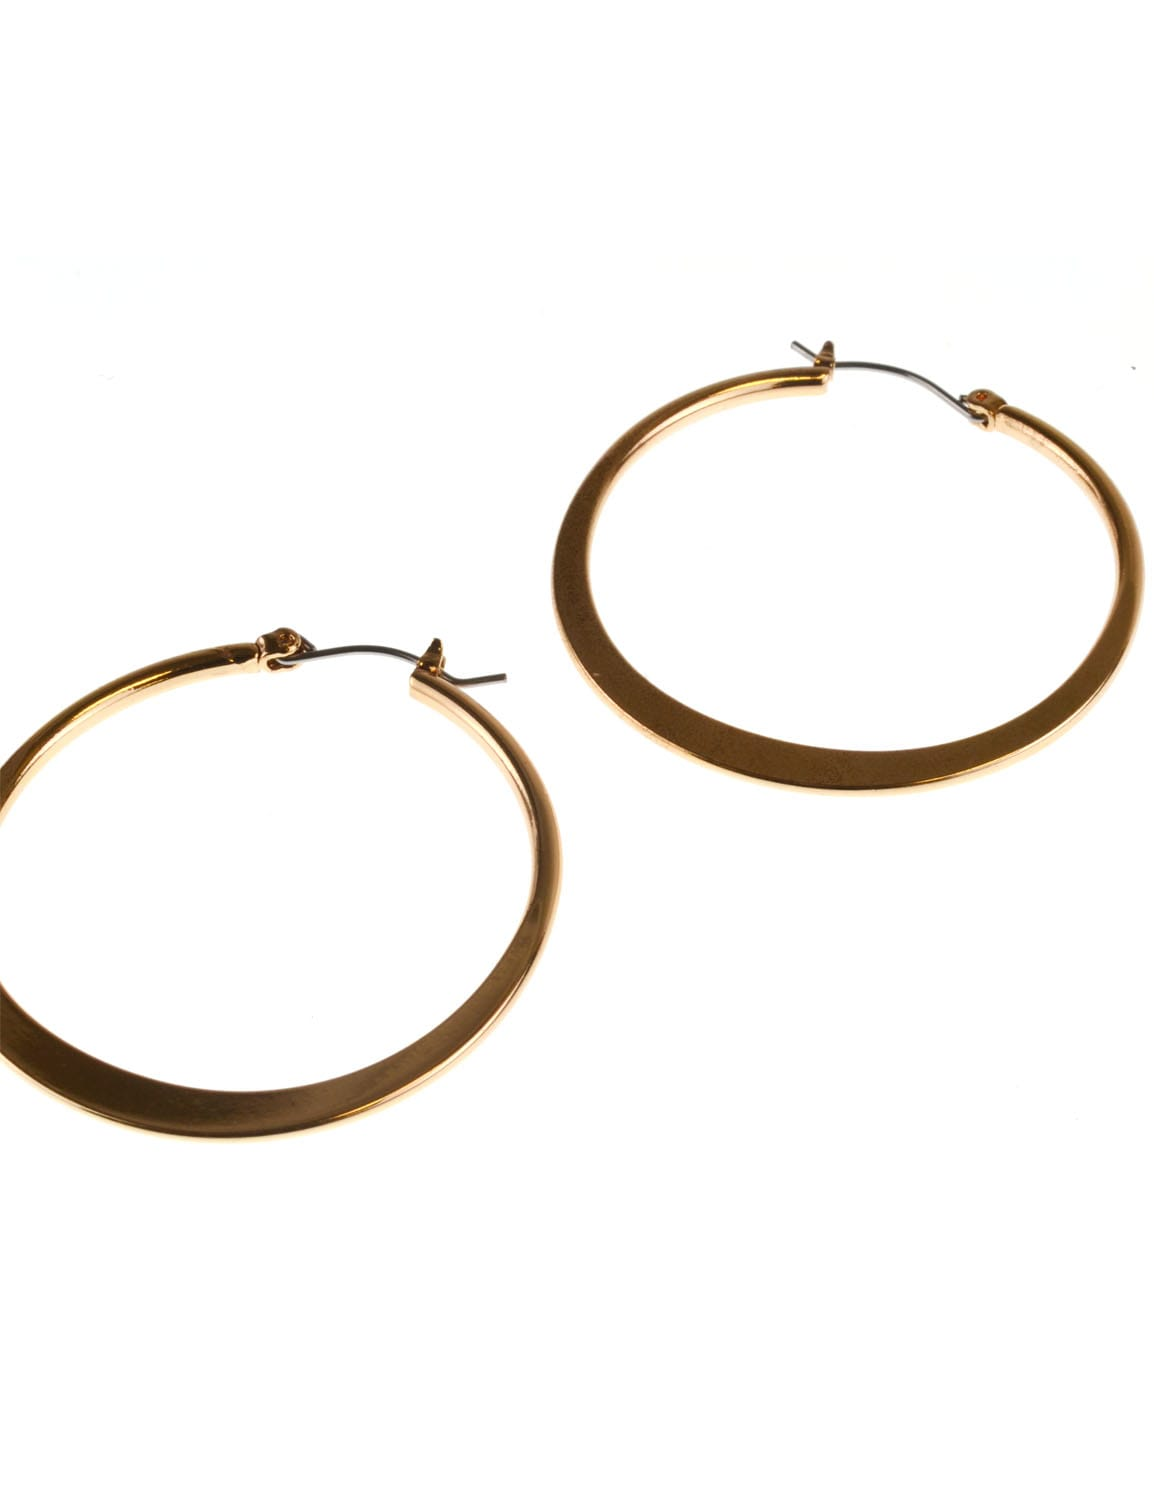 Small Round Click-It Hoop - Gold Plating - Detail